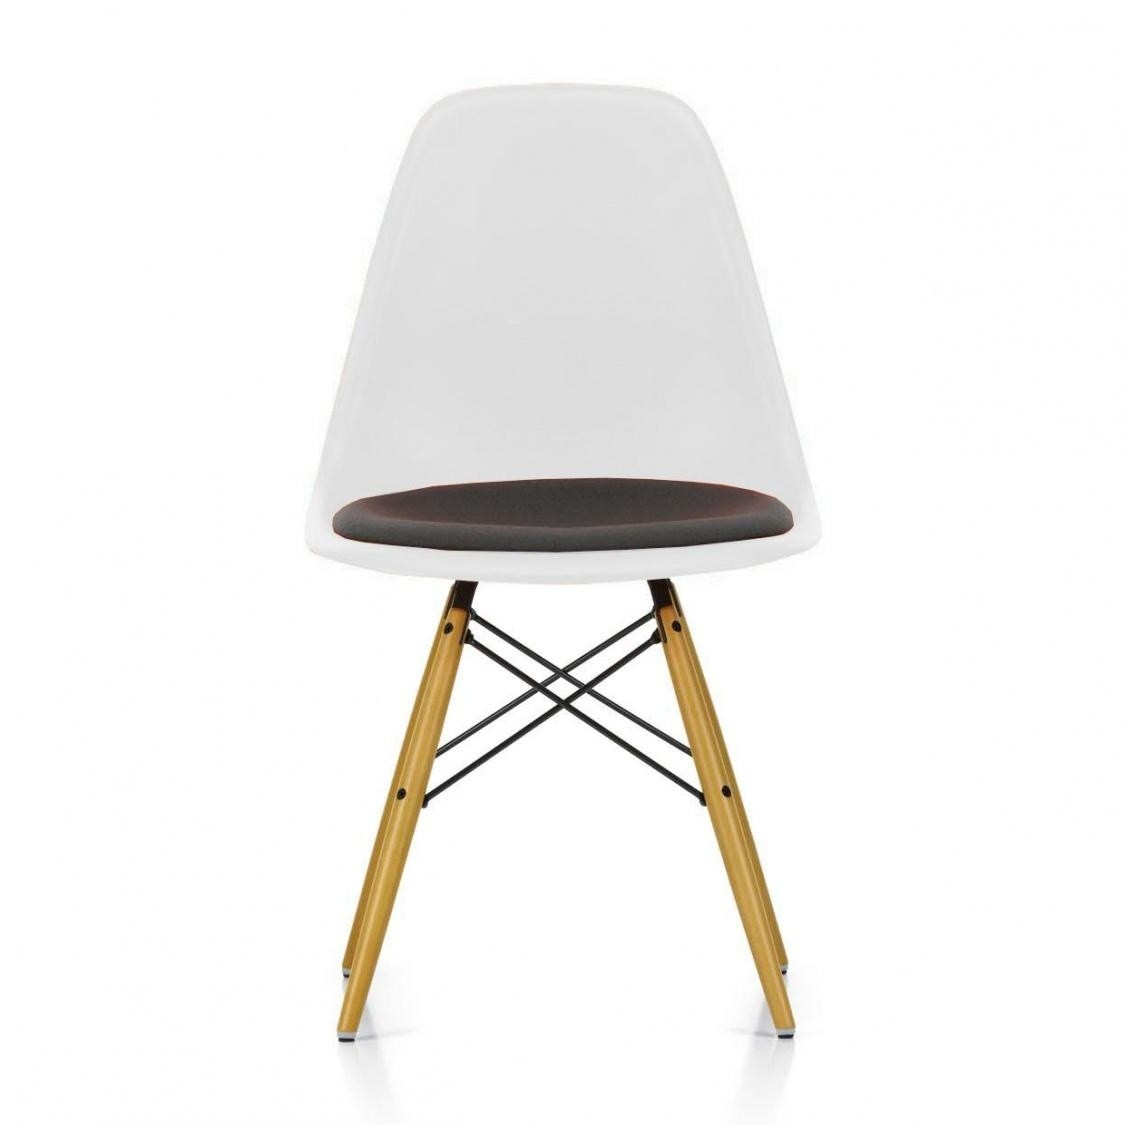 Eames plastic side chair dsw gepolstert h43cm vitra for Vitra outlet